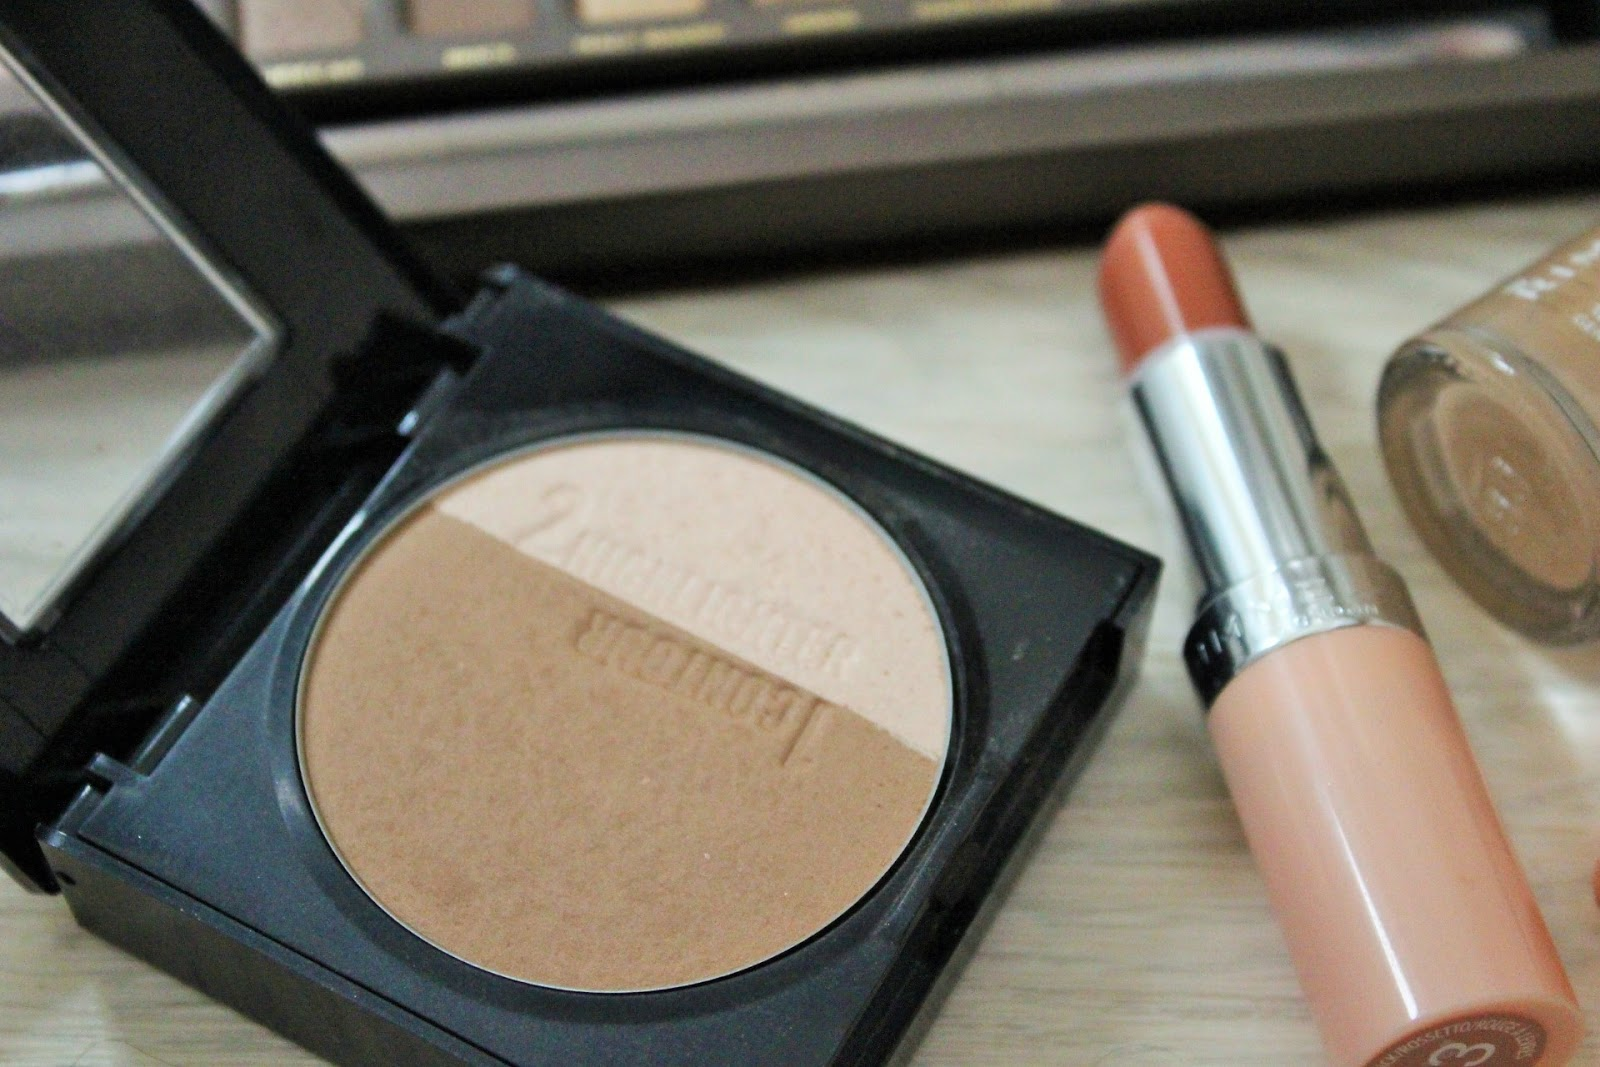 Nude makeup look featuring Maybelline Master Sculpt Contouring kit in light/medium